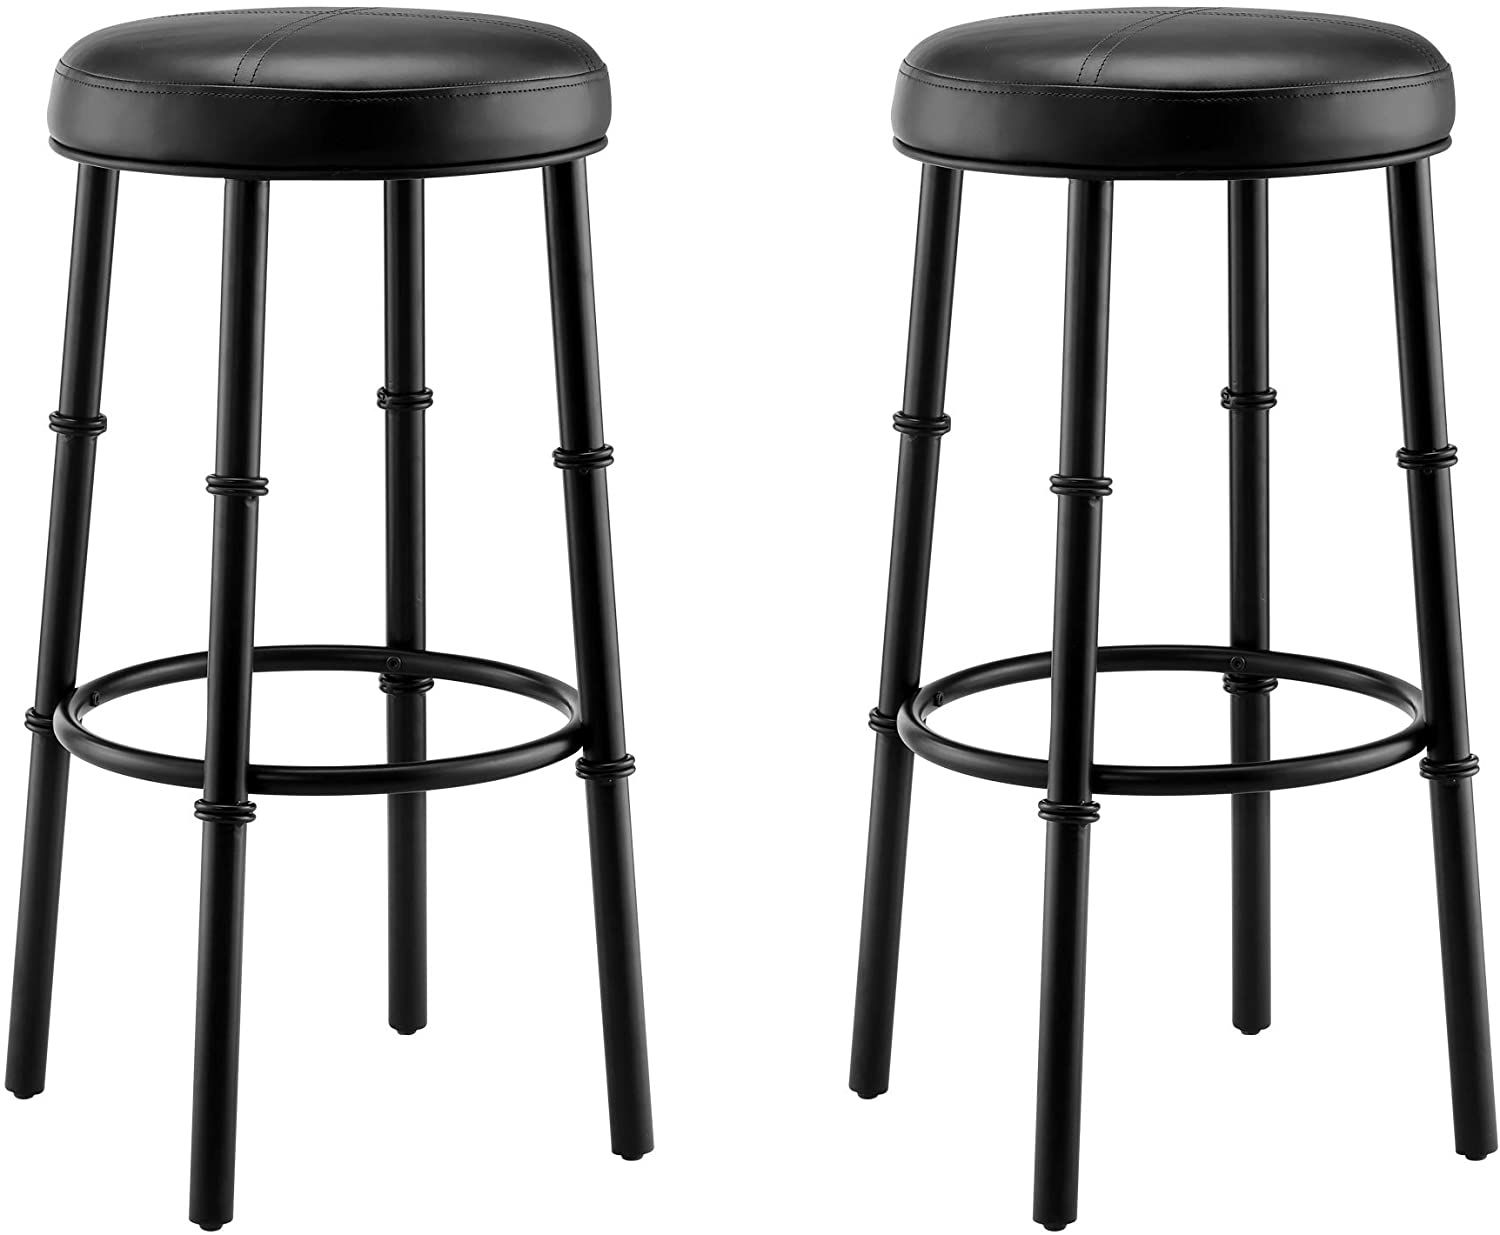 Round Black Metal Bar Stool Counter Height Bar Stools With Pu Leather Cushion Seat For Kicthen Bar Set Of 2 3 Bar Stools Metal Bar Stools Tall Bar Stools